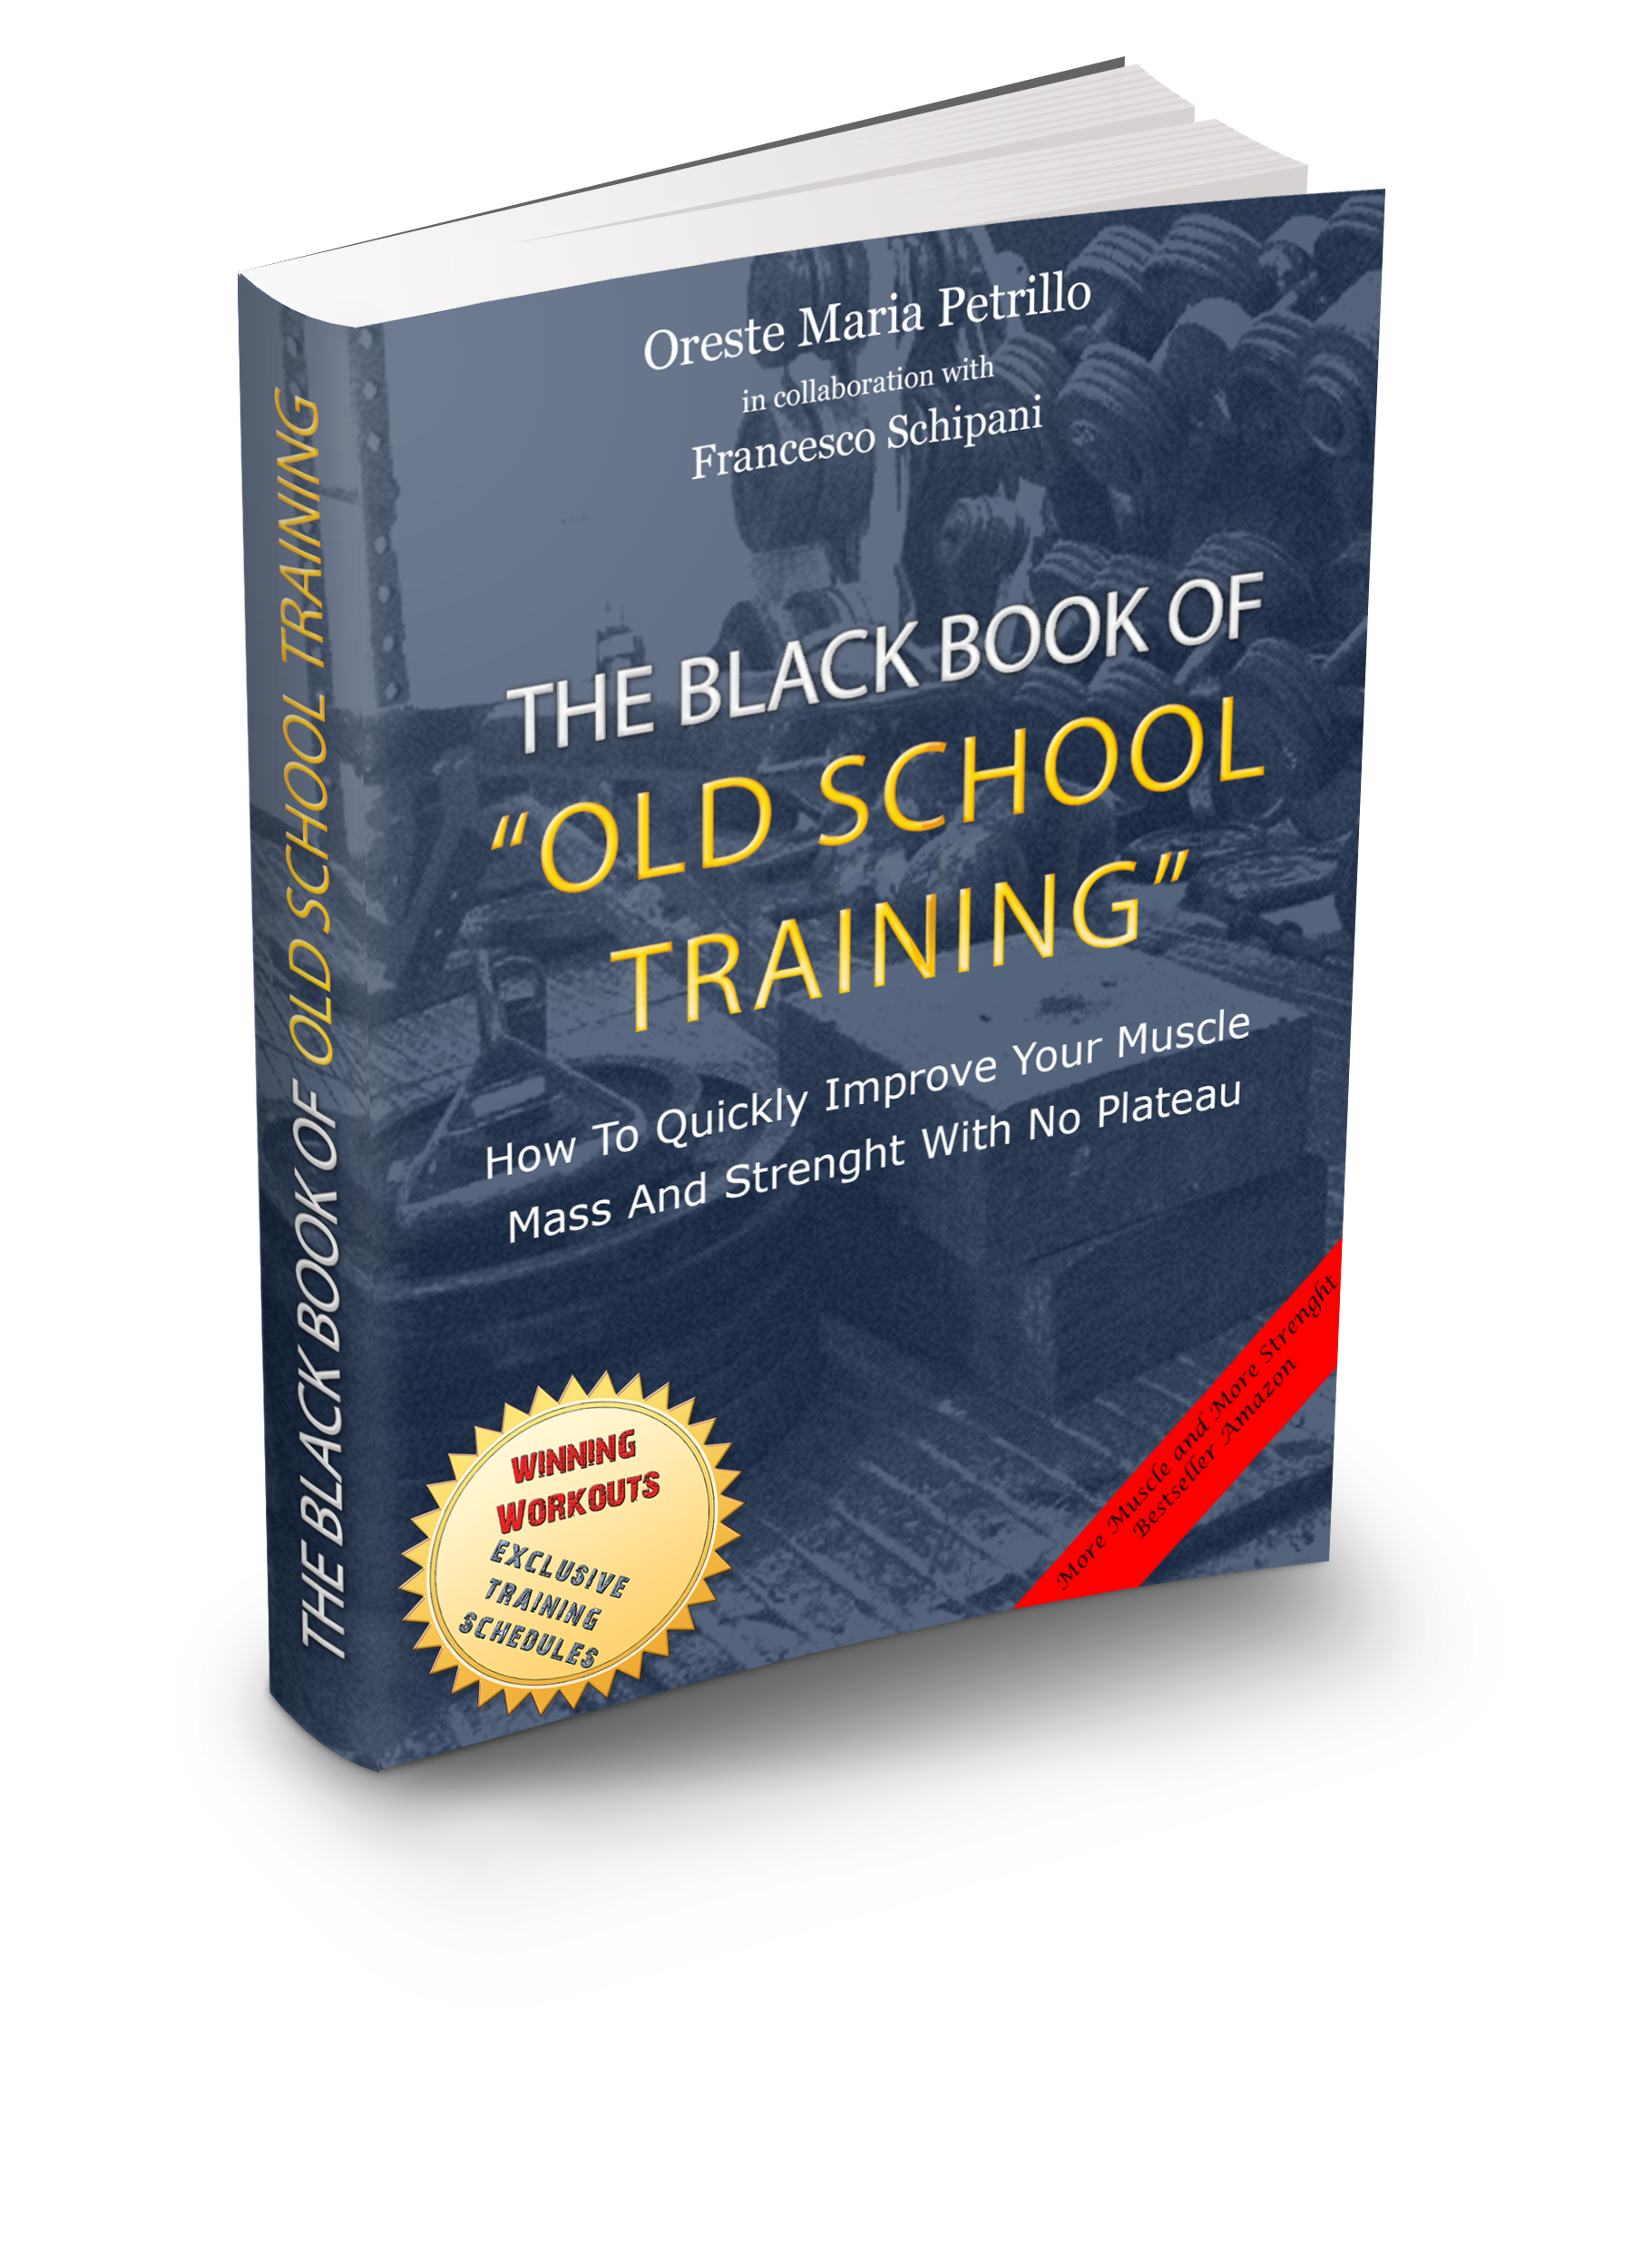 The black book of old school training secure oldschooltraining benefit solutioingenieria Images